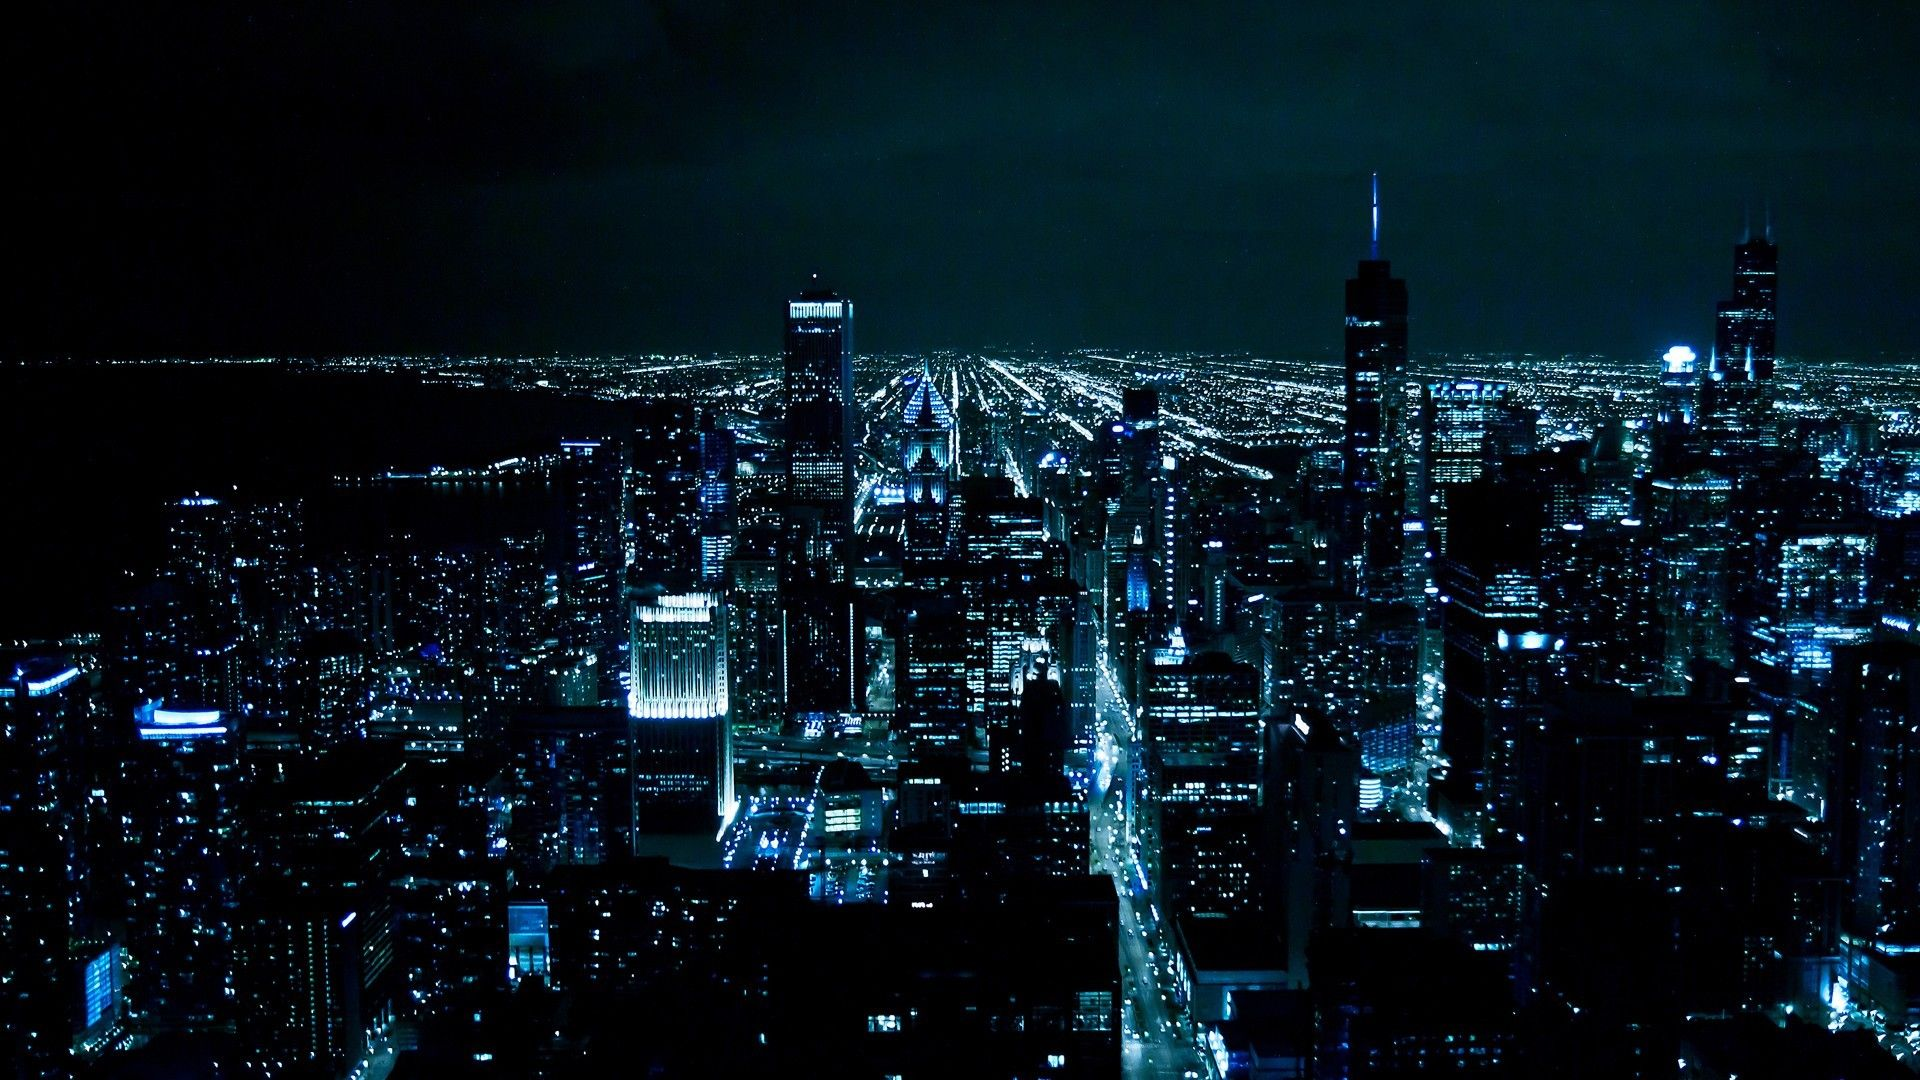 Chi Town City Lights Wallpaper Chicago Wallpaper